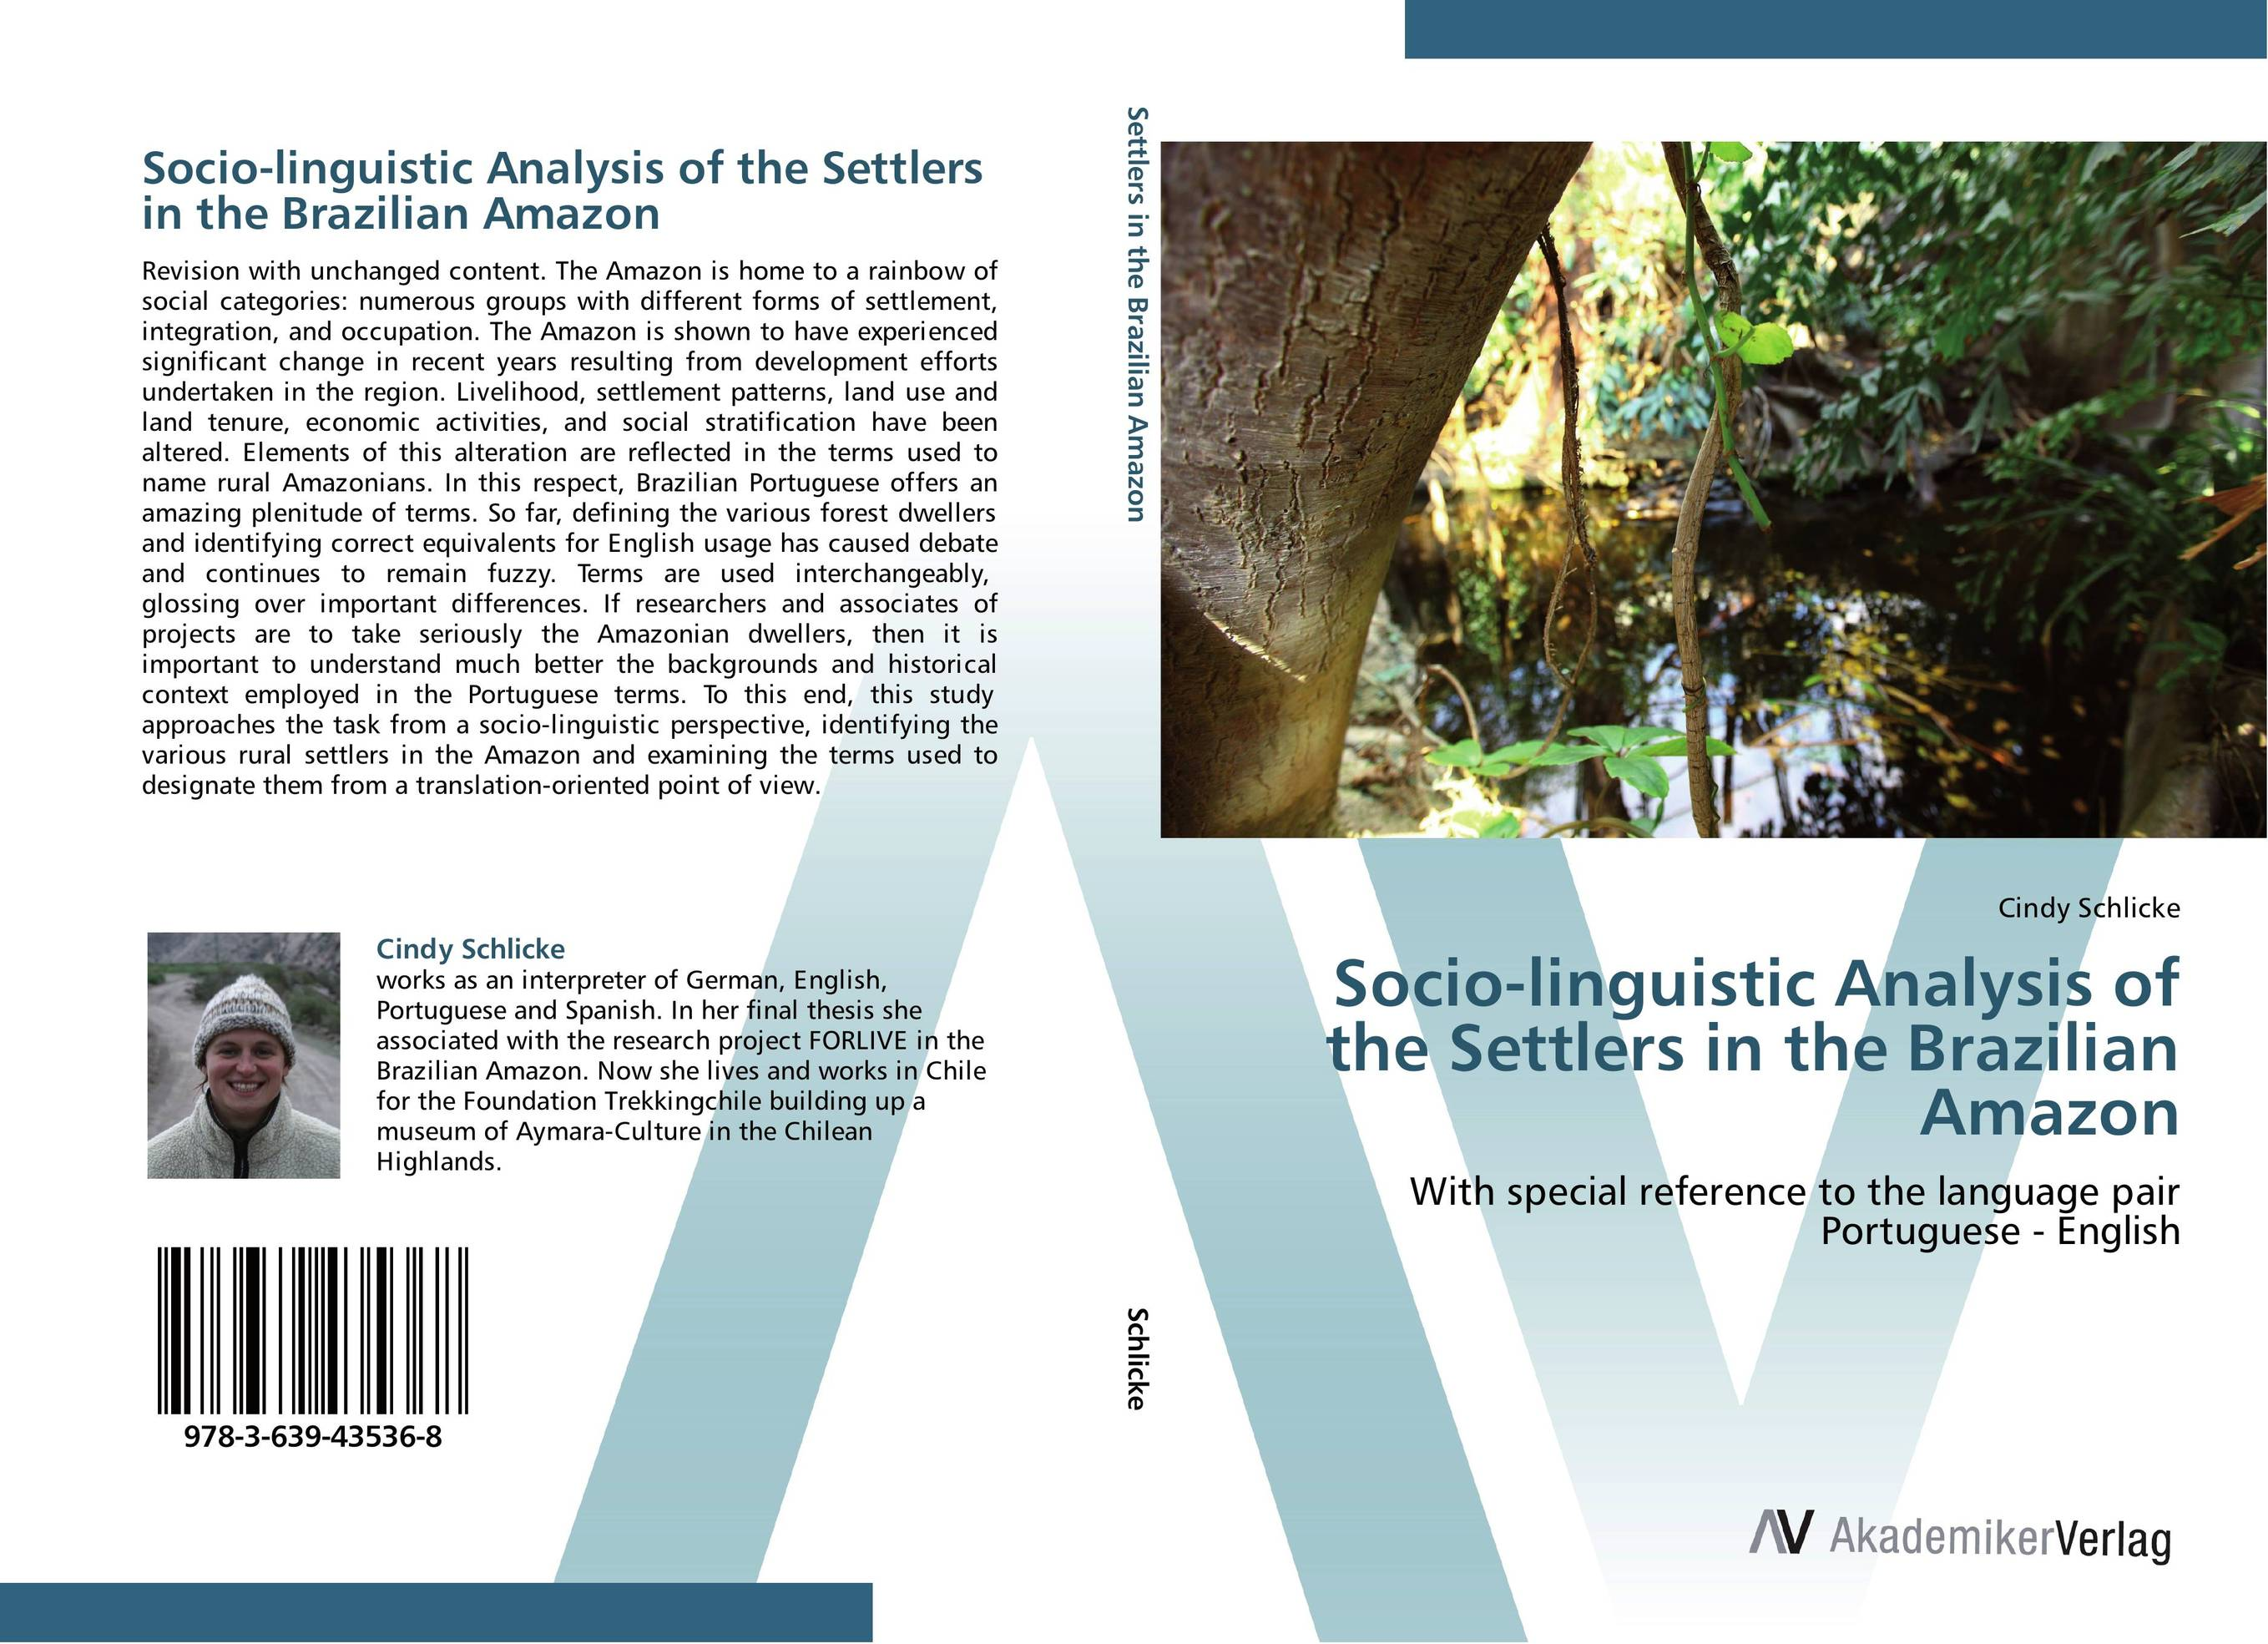 Socio-linguistic Analysis of the Settlers in the Brazilian Amazon voltammetric techniques for the analysis of pharmaceuticals